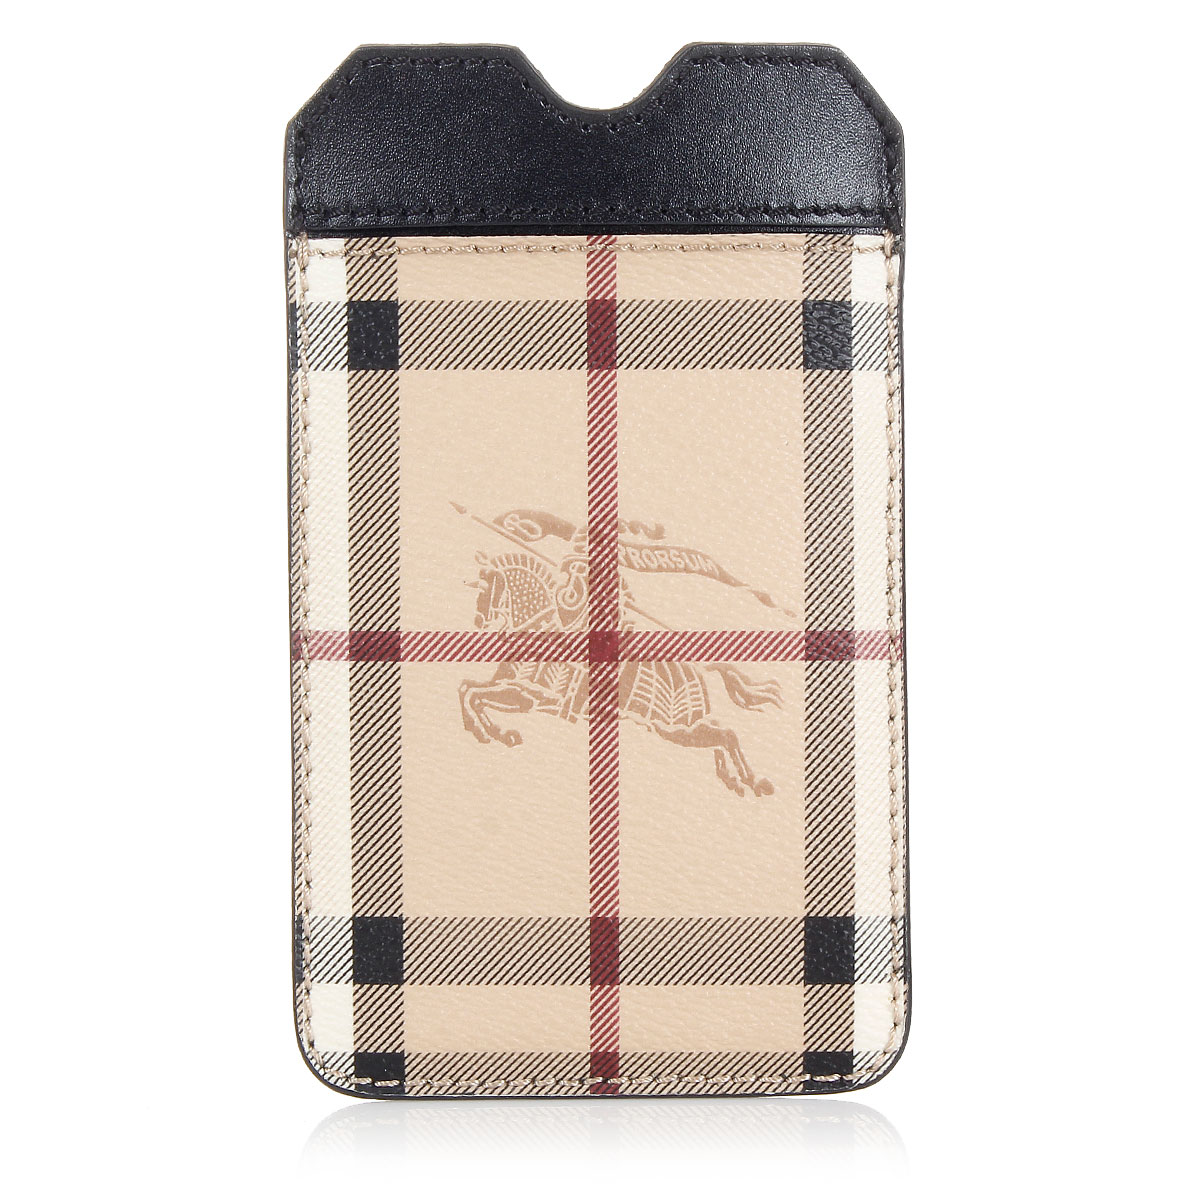 burberry bags outlet sales 1p5p  burberry bags outlet sales